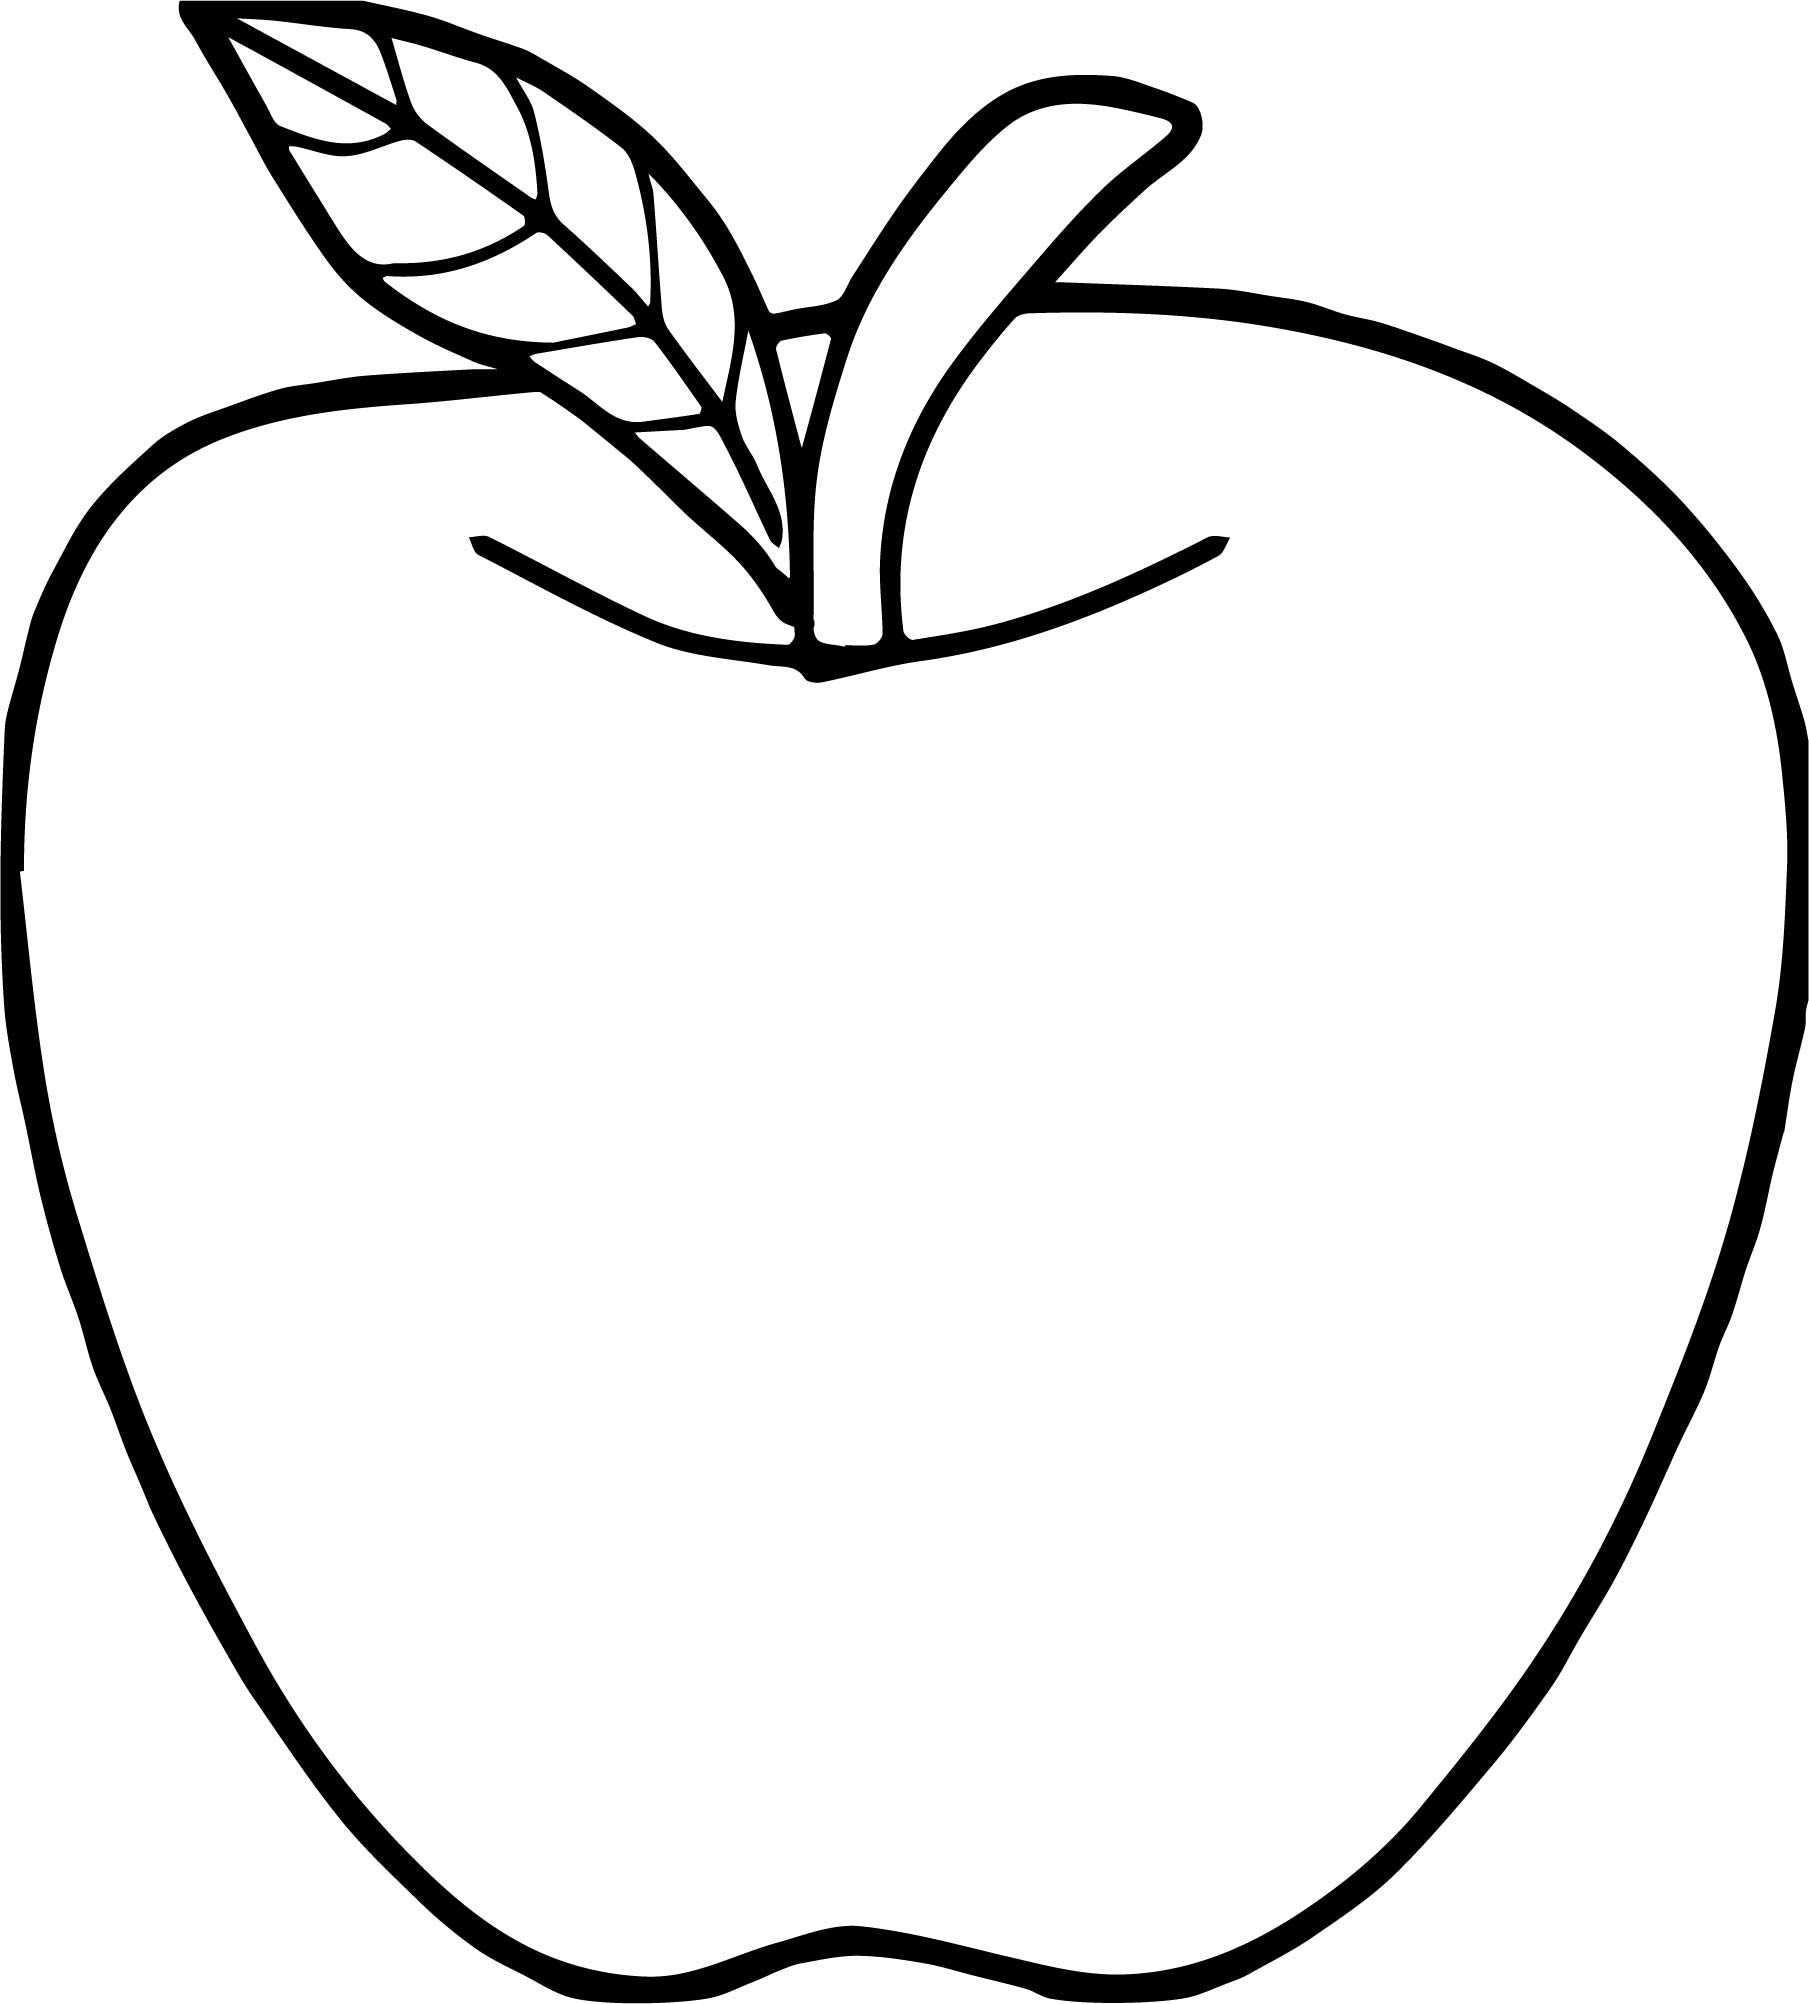 coloring pages apple free printable apple coloring pages for kids coloring apple pages 1 1